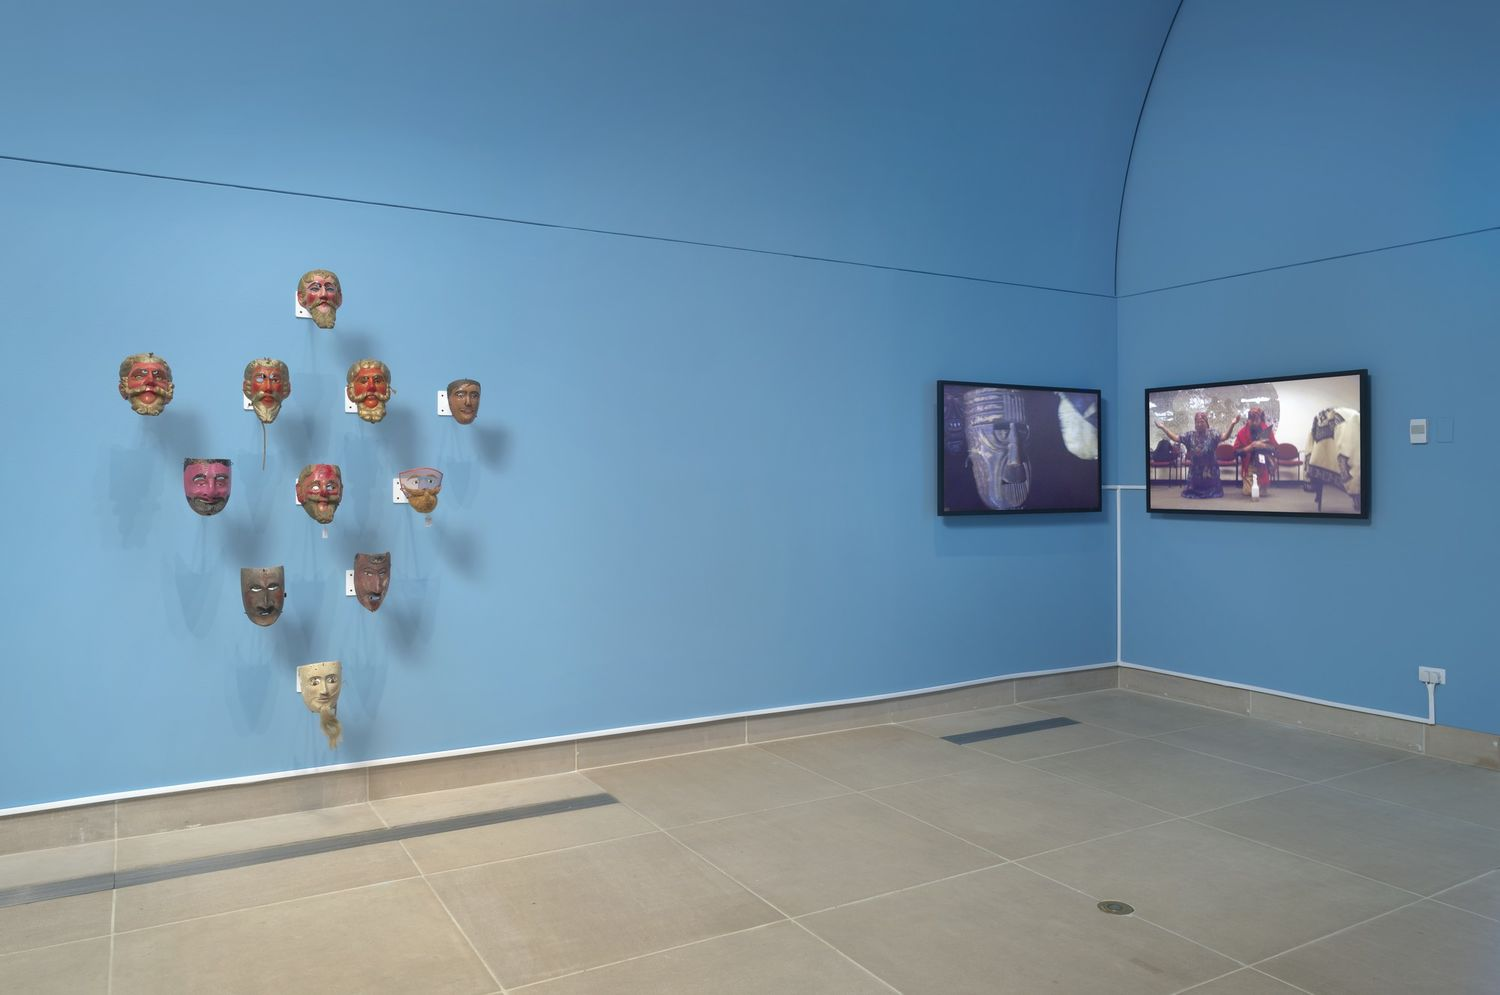 A triangle pattern of masks displayed against a blue wall, next to two monitors in the corner